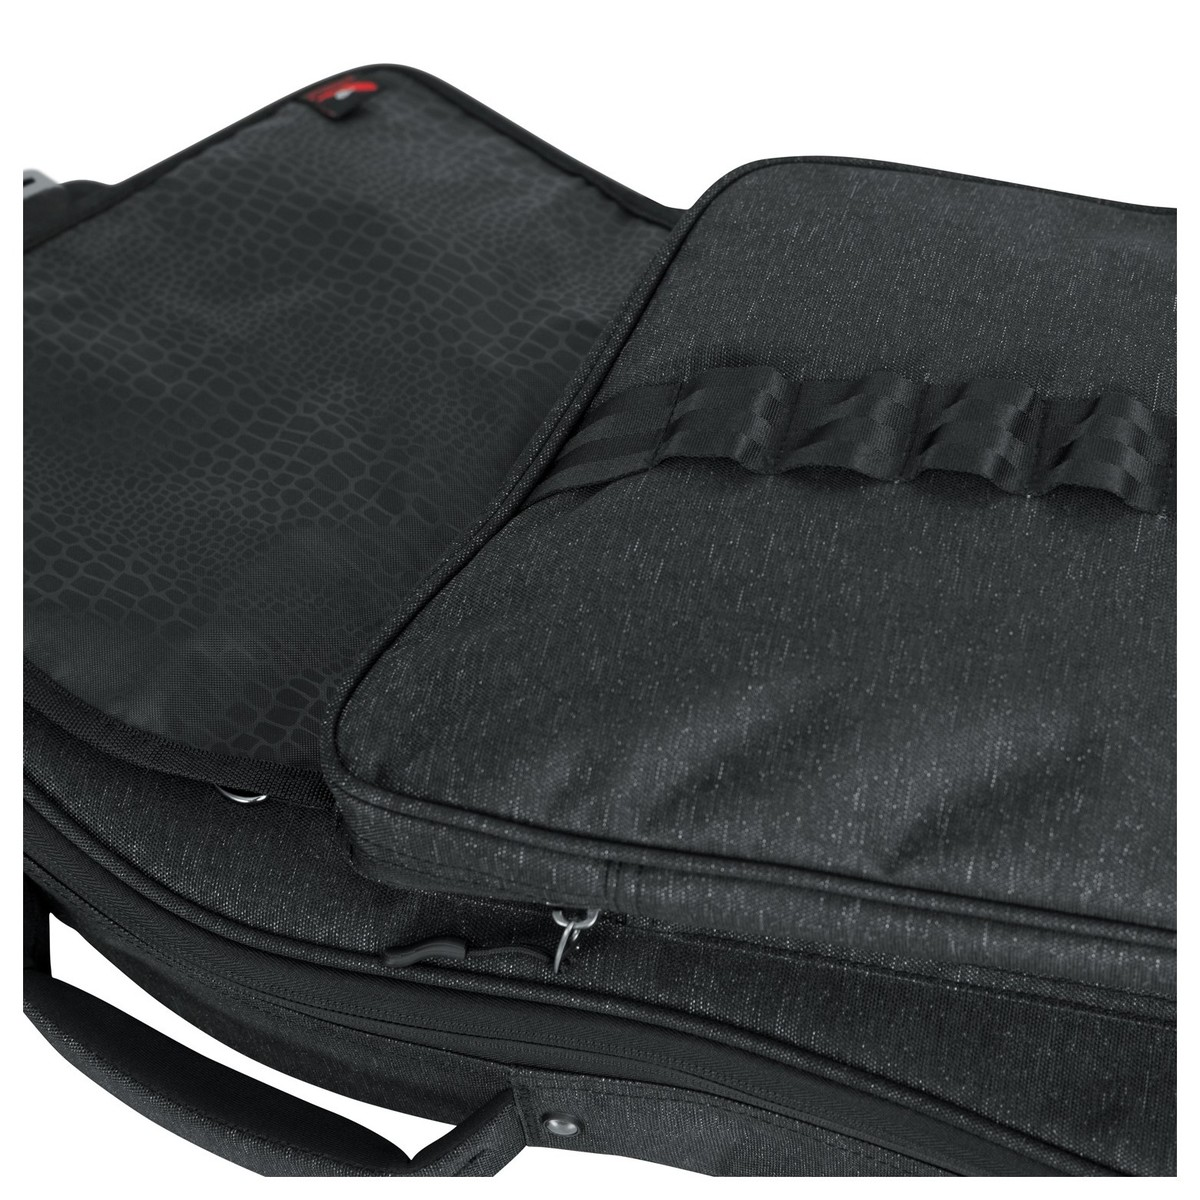 Gator Gt Electric Blk Transit Series Guitar Bag Black At Go Back Gallery For Parts Front Pocket Loading Zoom